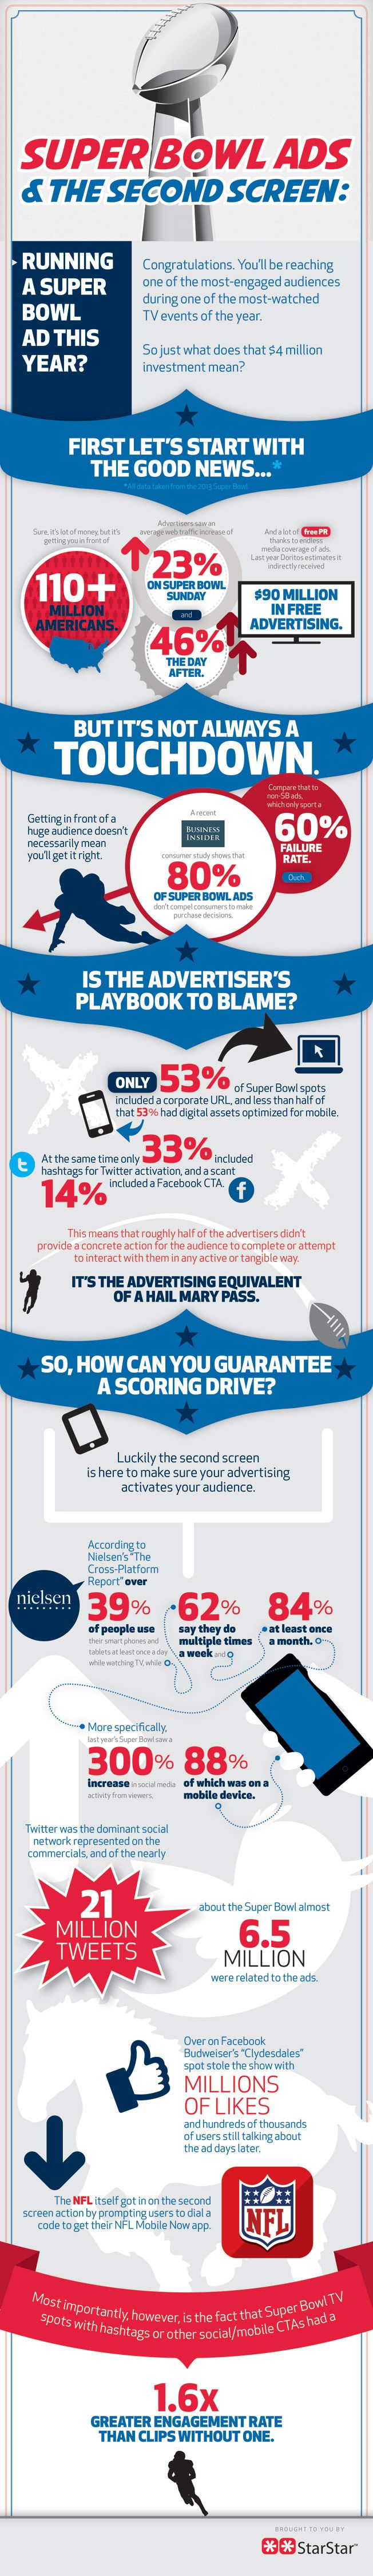 Will Super Bowl Advertisers Put Hashtags and Facebook URLs in Their Spots?: Social Media Marketing, Bowls Adverti, Ads Infographic, Bowls Ads, Super Bowls, Superbowl Infographic, 2Nd Screens, Second Screens, Mobiles Marketing